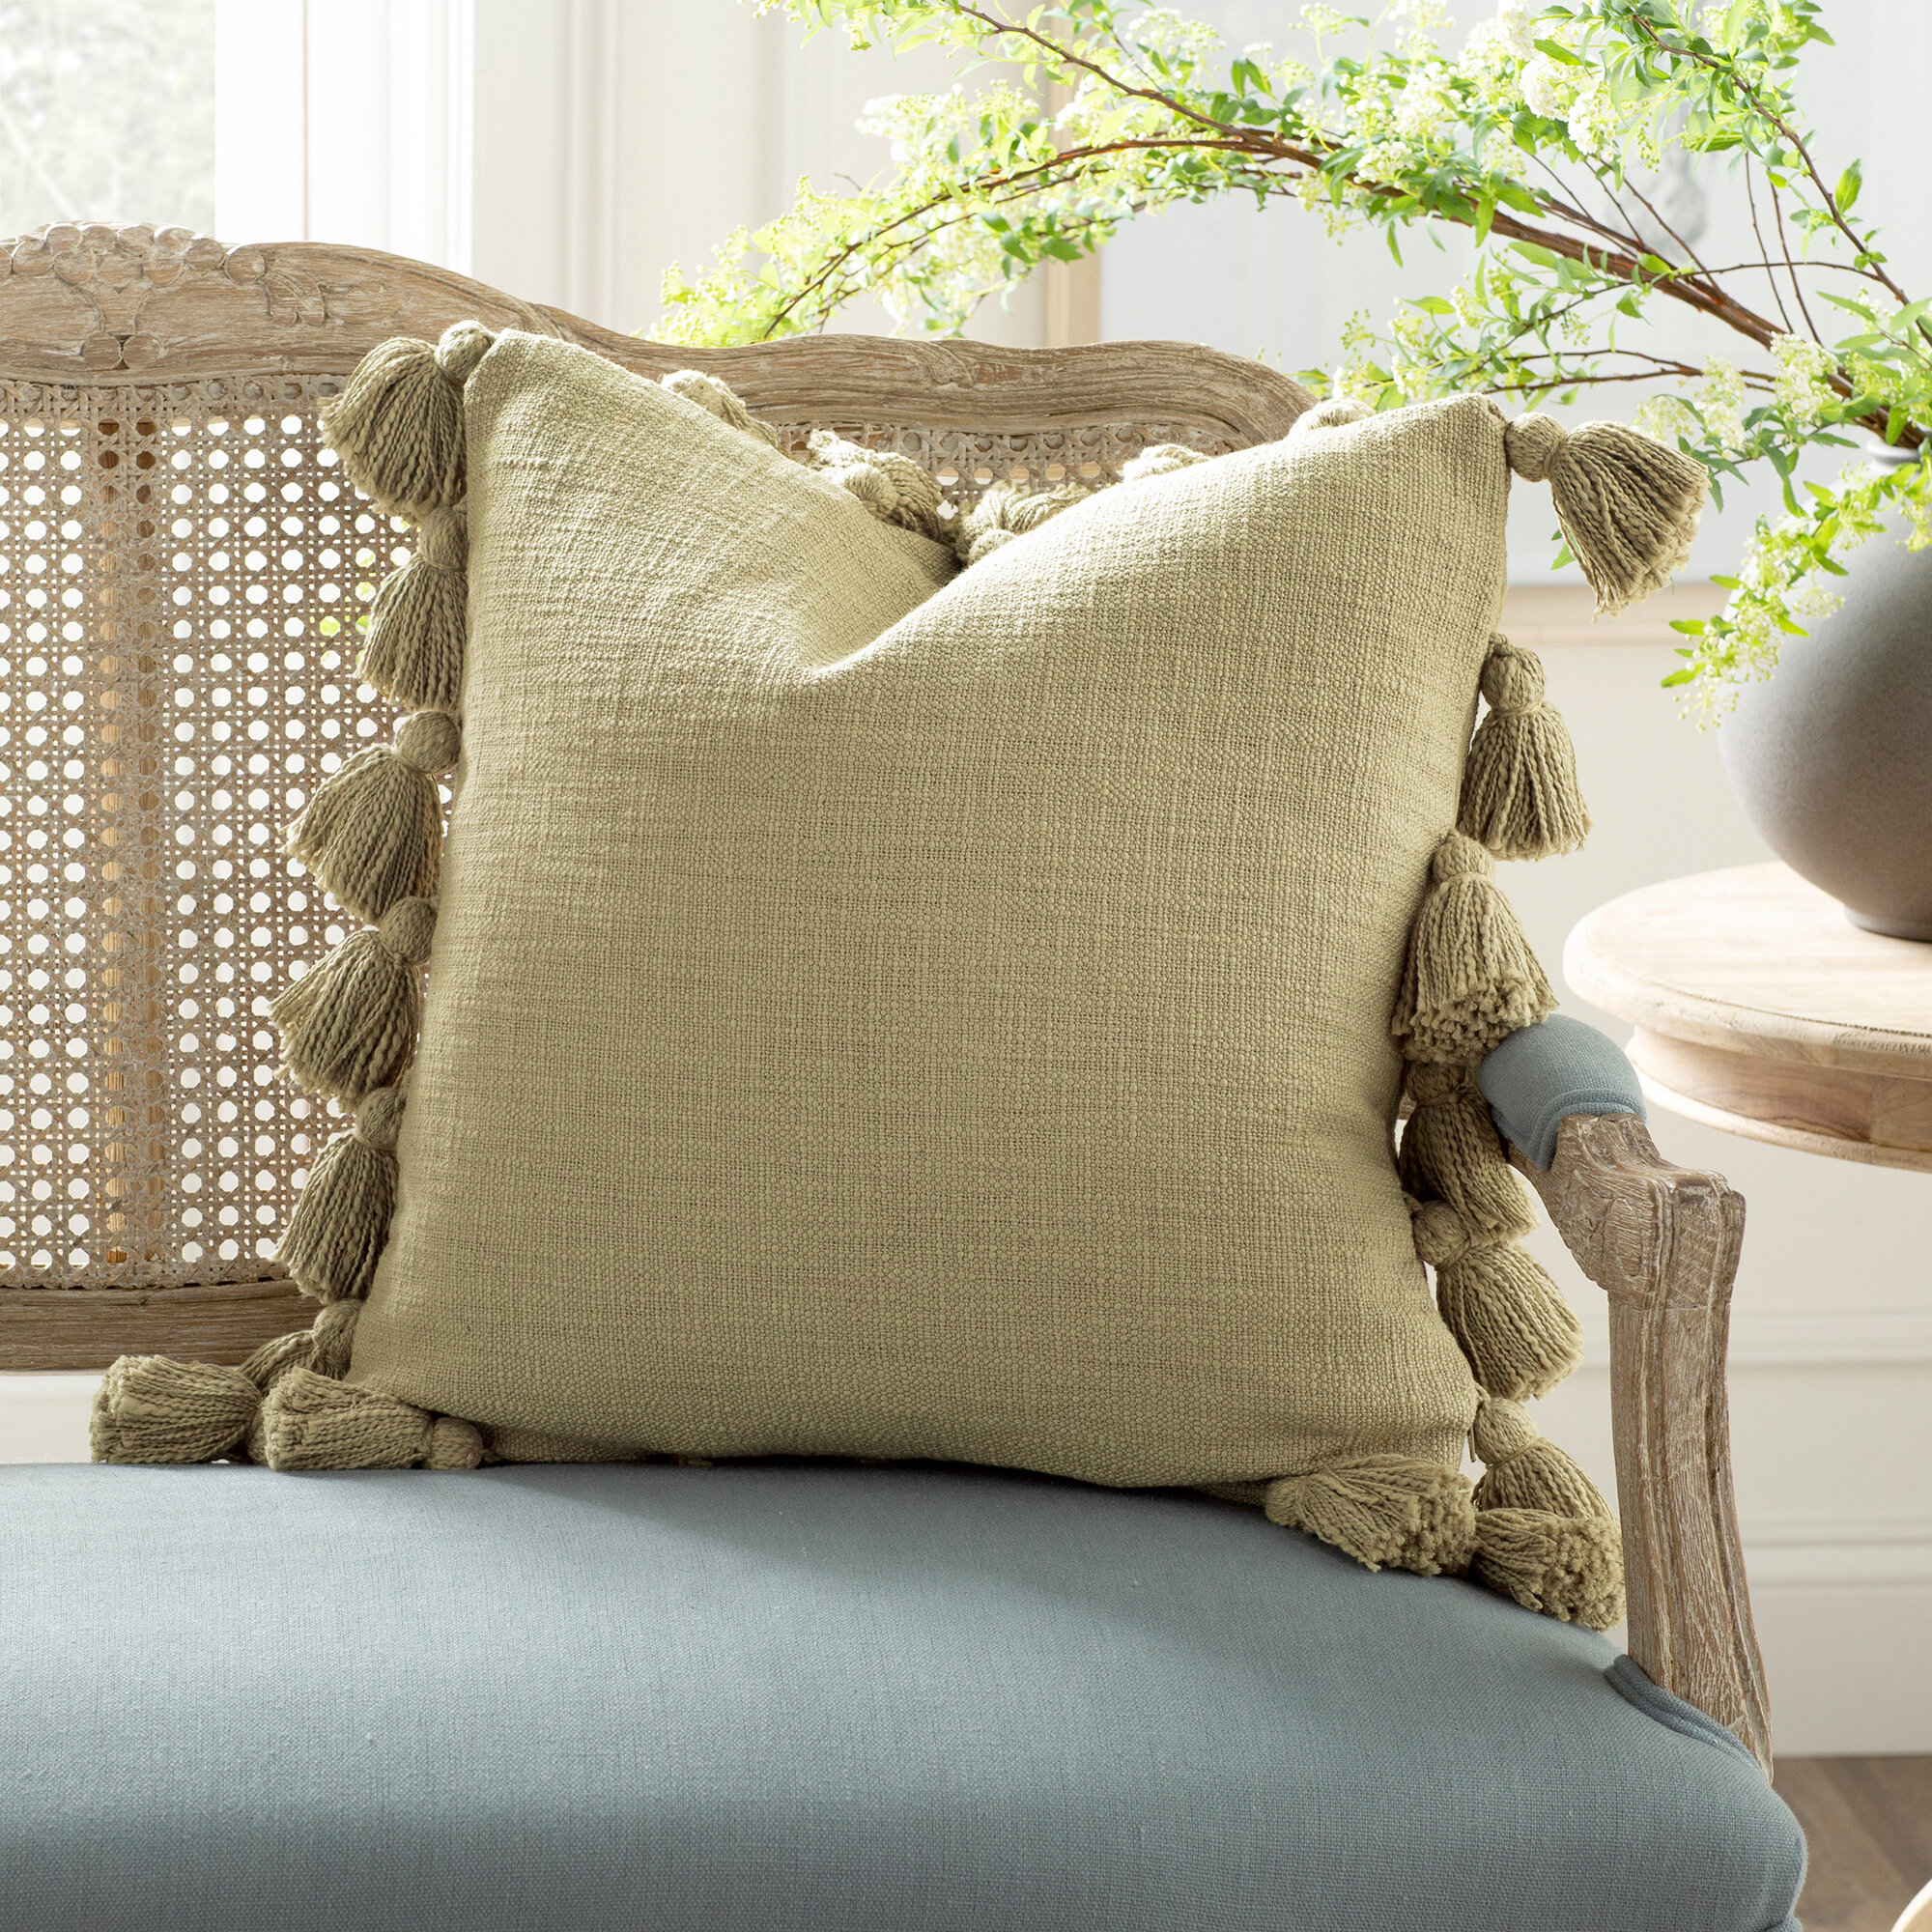 Kelly Clarkson Home Interlude Luxurious Square Cotton Pillow Cover And Insert Reviews Wayfair